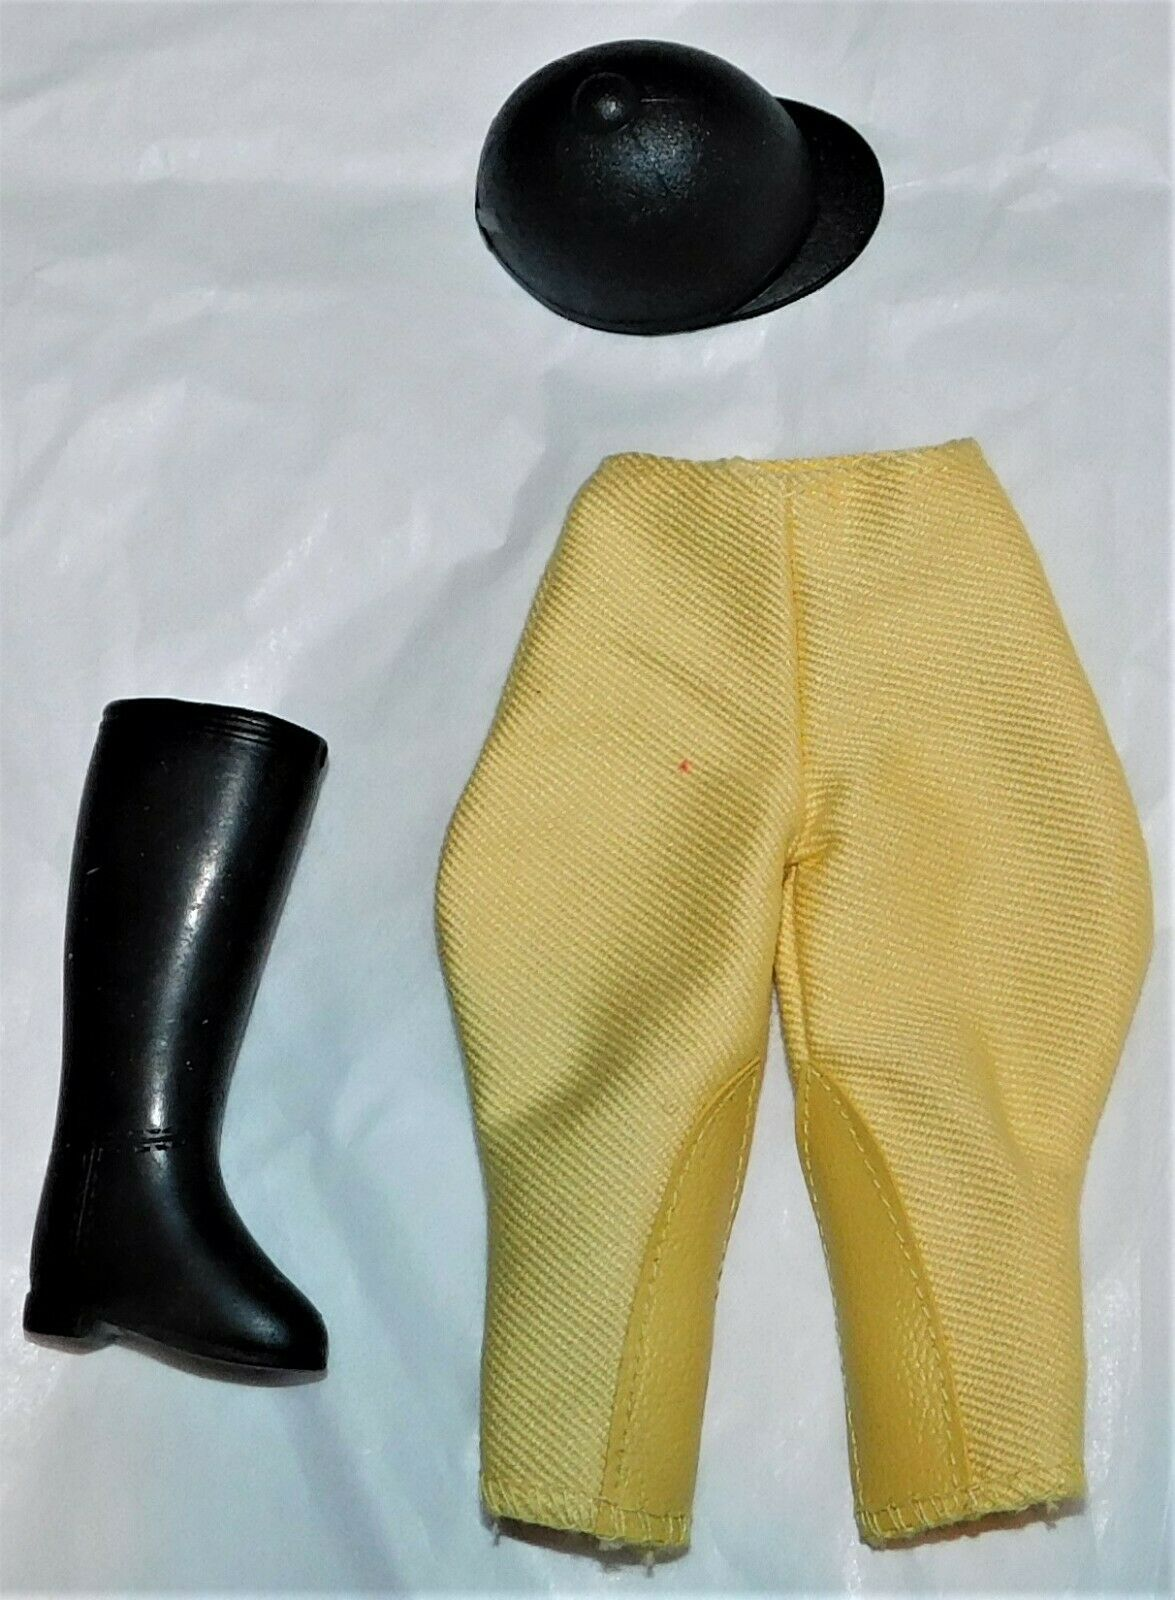 Vintage Barbie Skipper Learning To Ride Hat, Riding 1 Riding Boot 1966 - $11.00